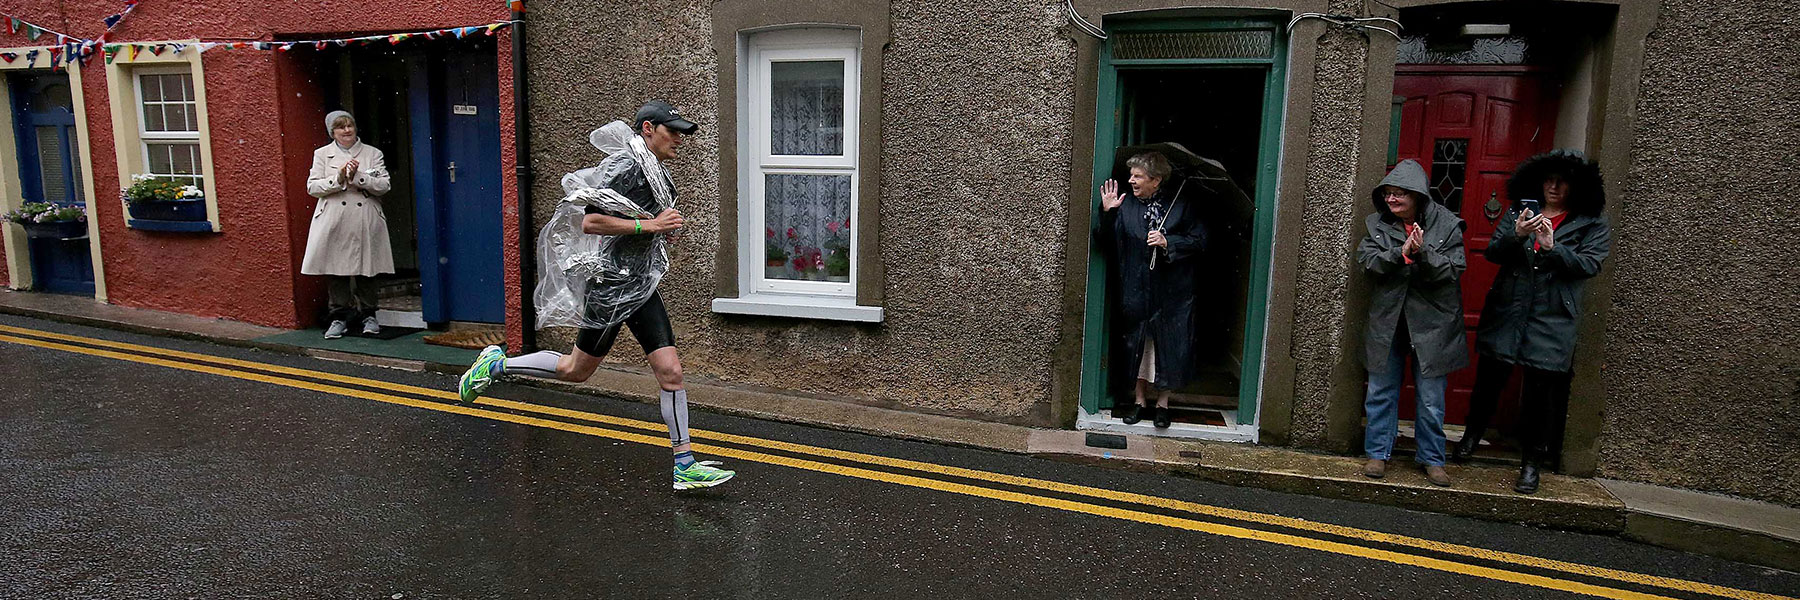 IRONMAN Ireland Cork athlete running through the city center of Youghal on a rainy day with people cheering him on